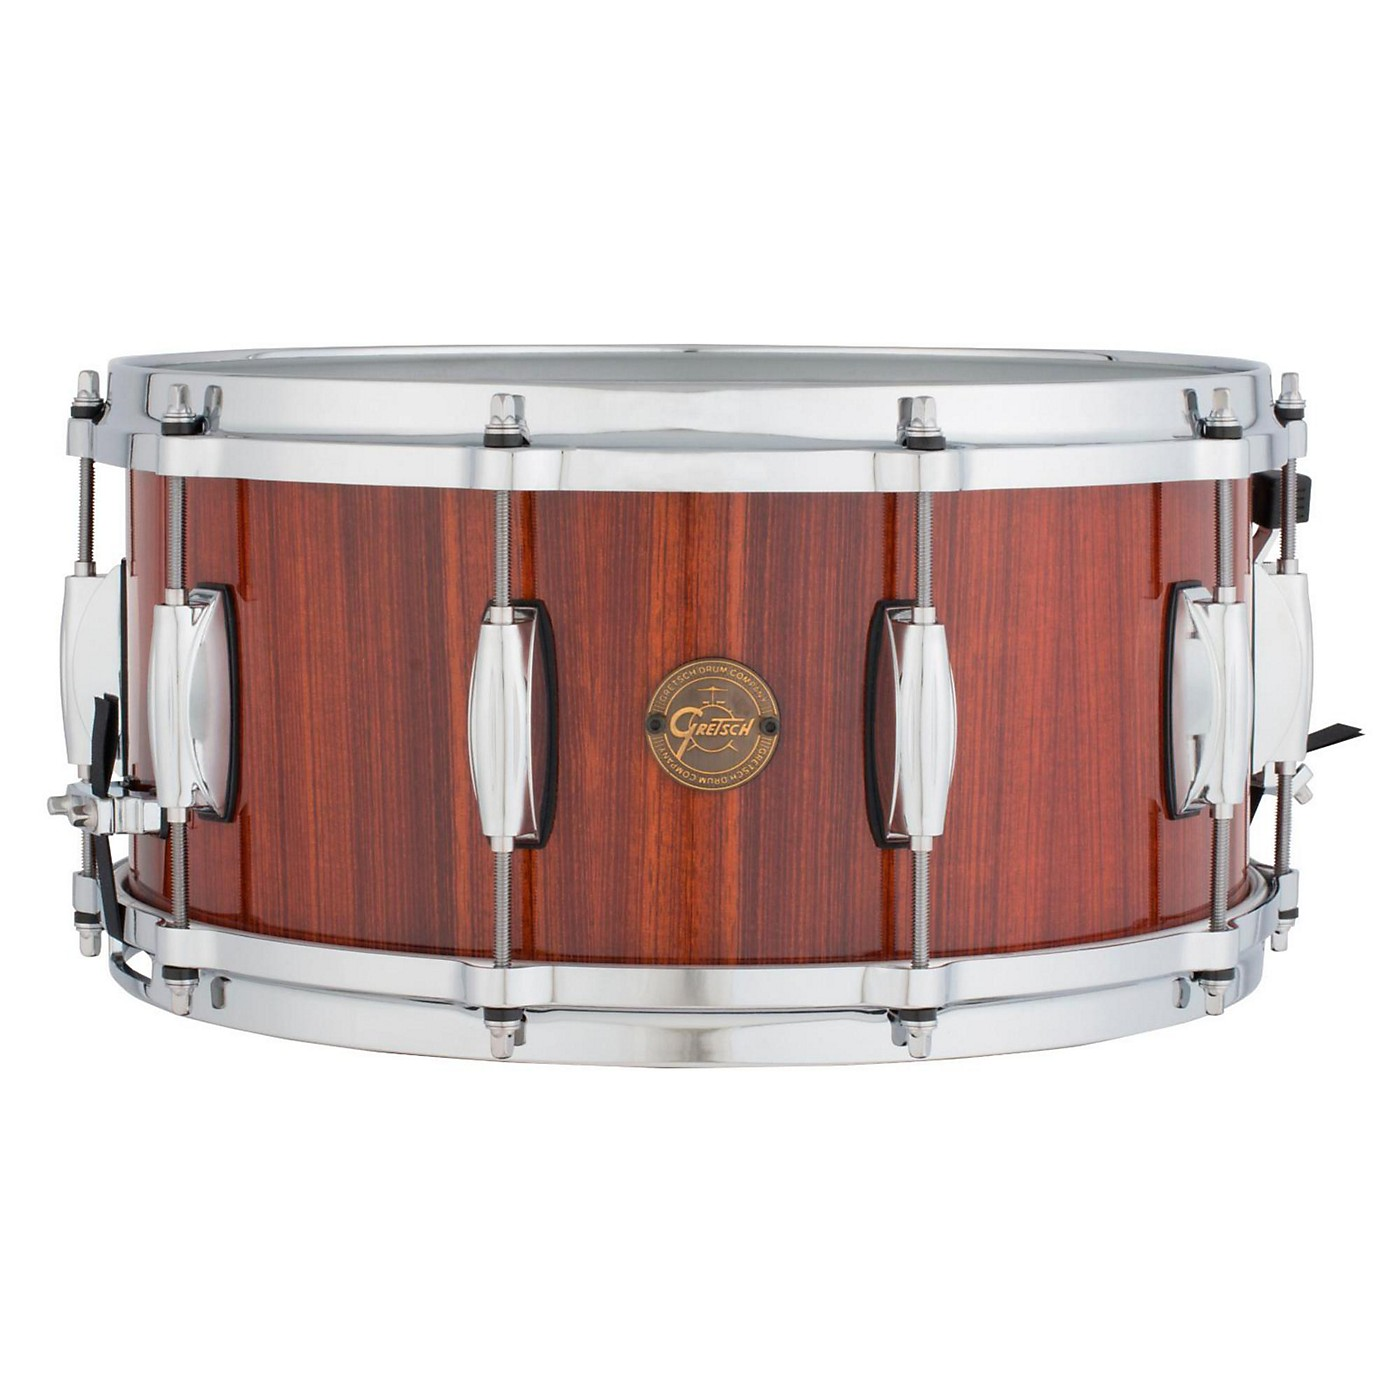 Gretsch Drums Gold Series Rosewood Snare Drum thumbnail